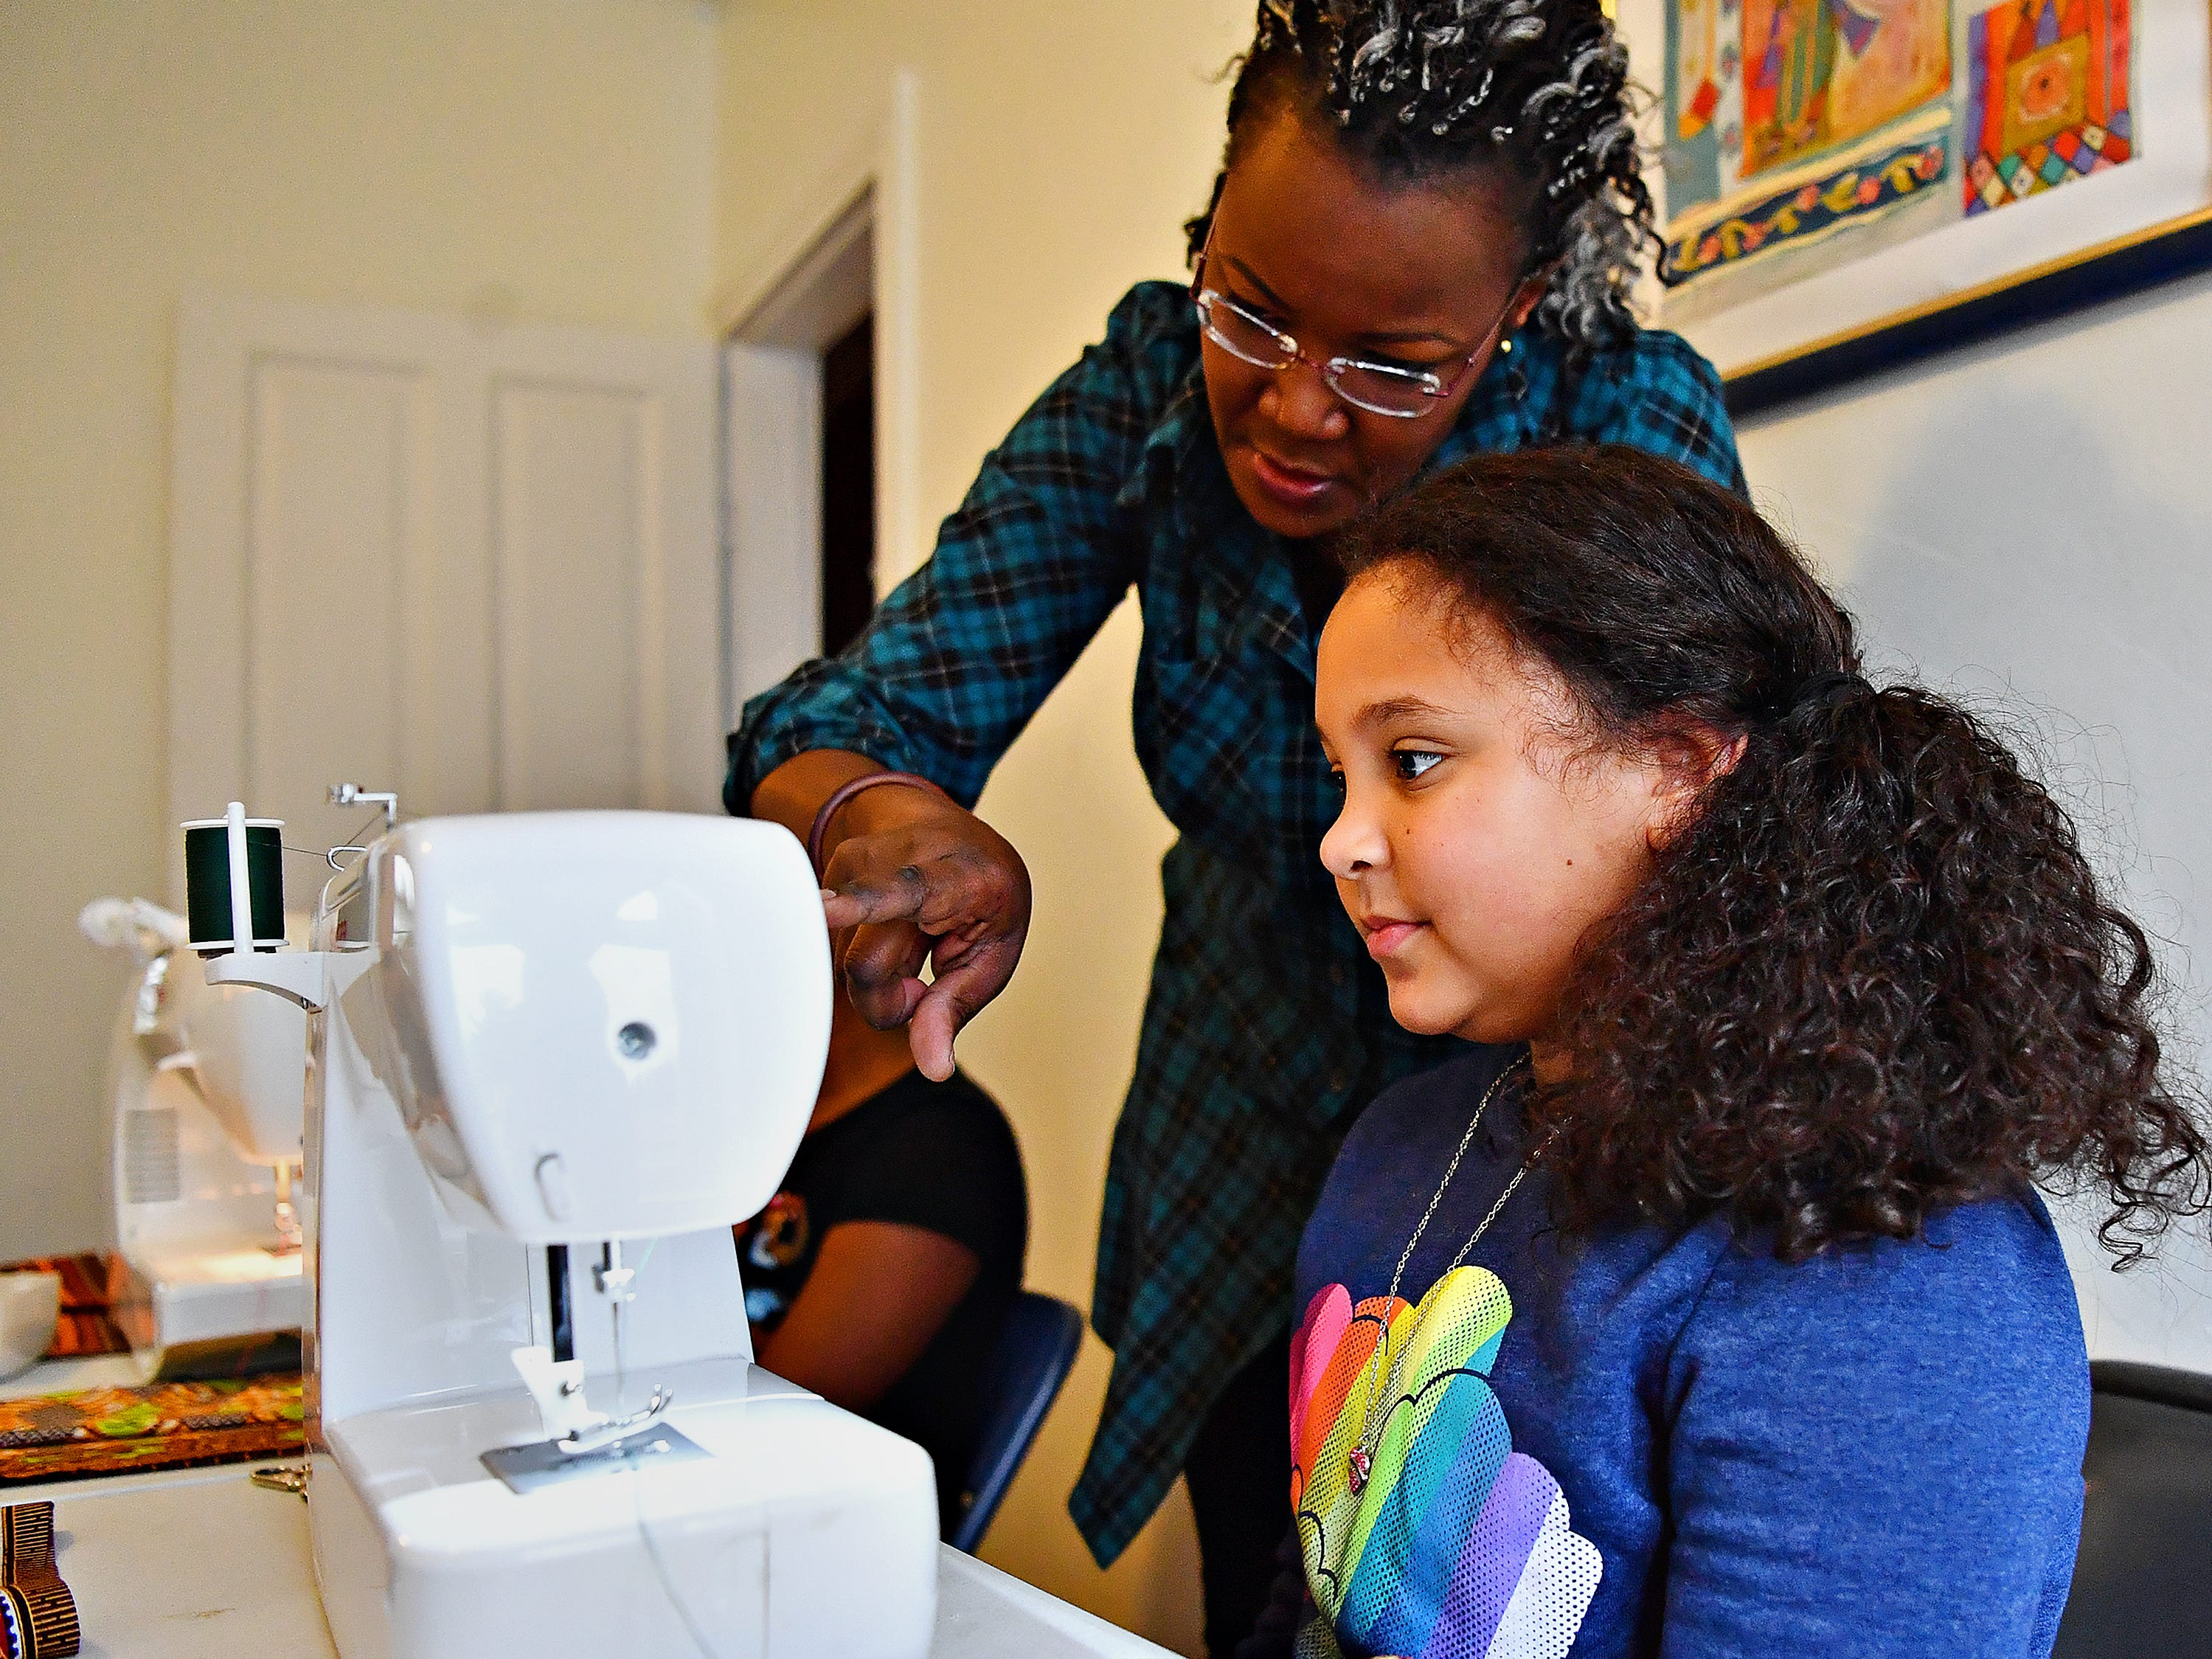 Victoria Kageni-Woodard, left, of Gusa by Victoria, works with Ariana Kraft, 9, of York City, as she leads a sewing workshop at her store in York City, Saturday, Jan. 5, 2019. Kraft would turn 10 the next day. Dawn J. Sagert photo